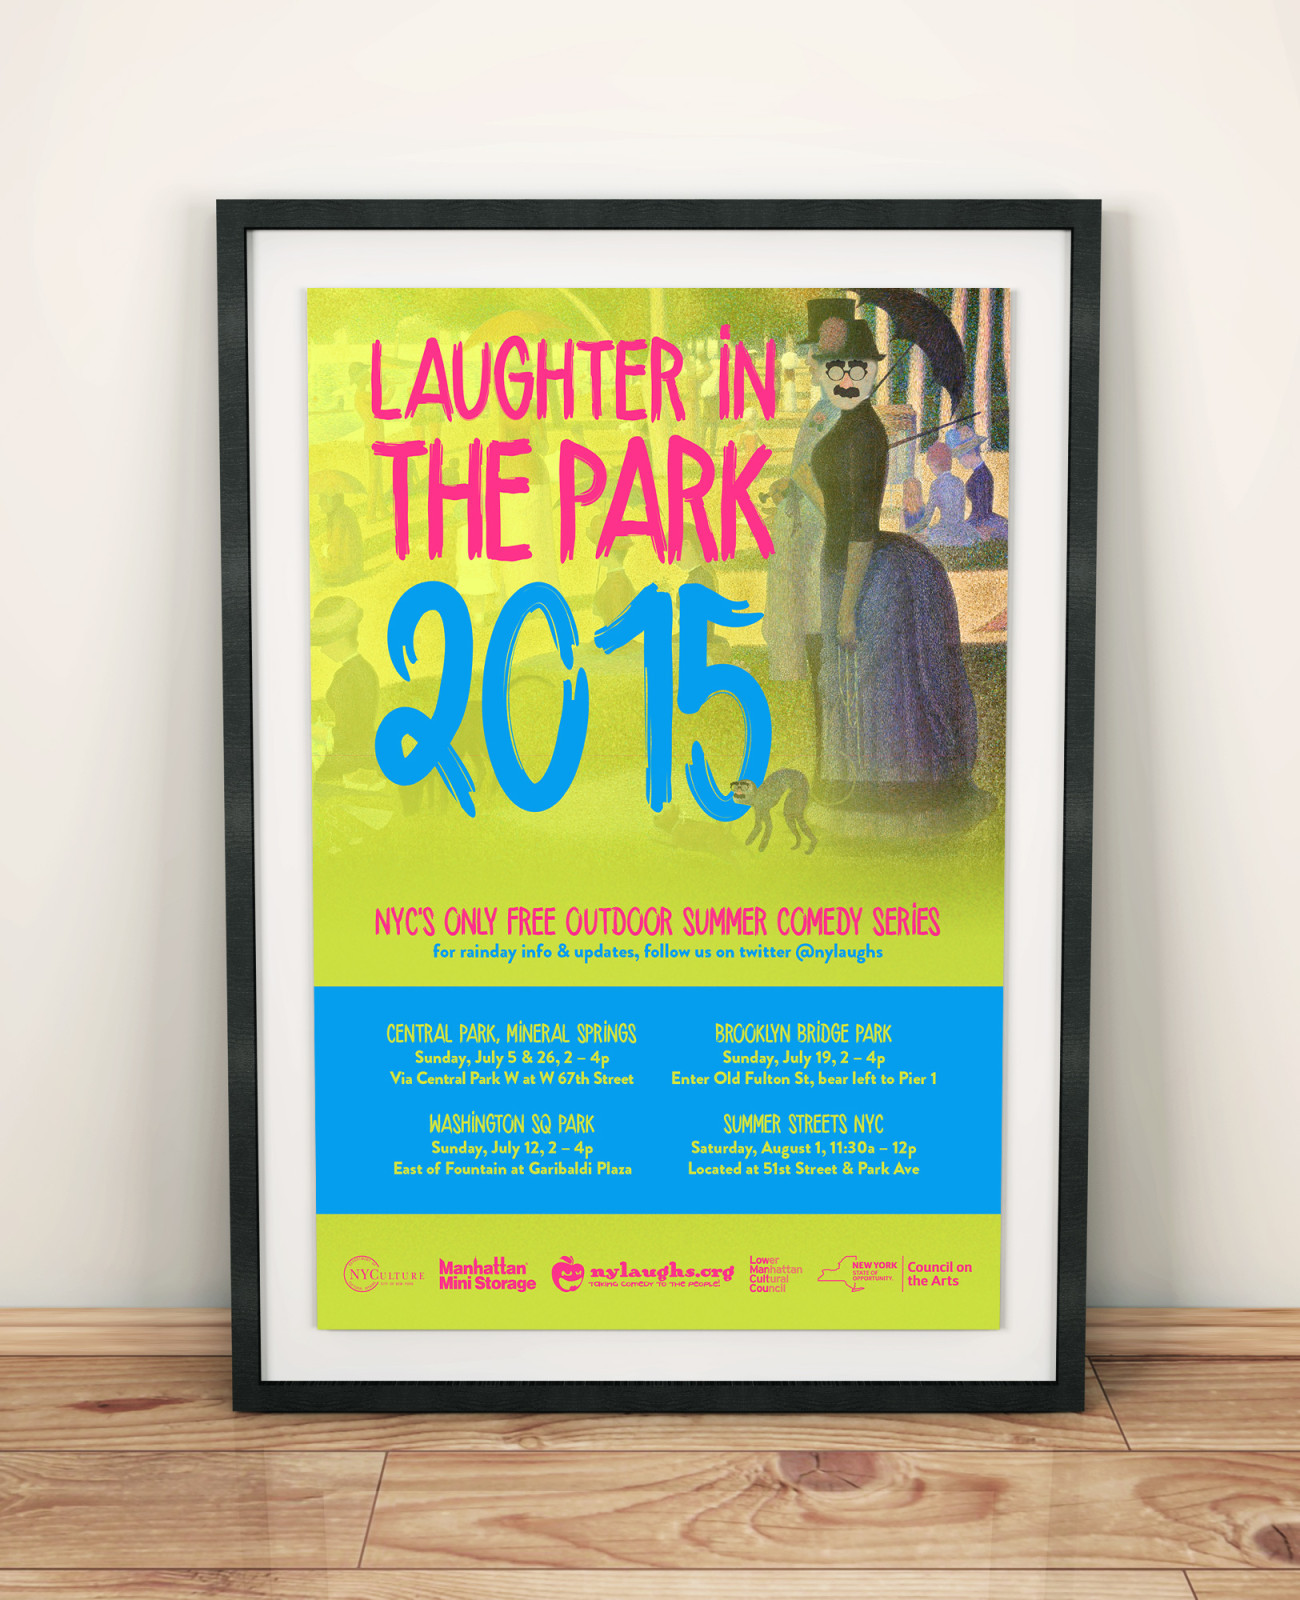 Laughter in the Park Poster 2015, designed by Query Creative in the Hudson Valley